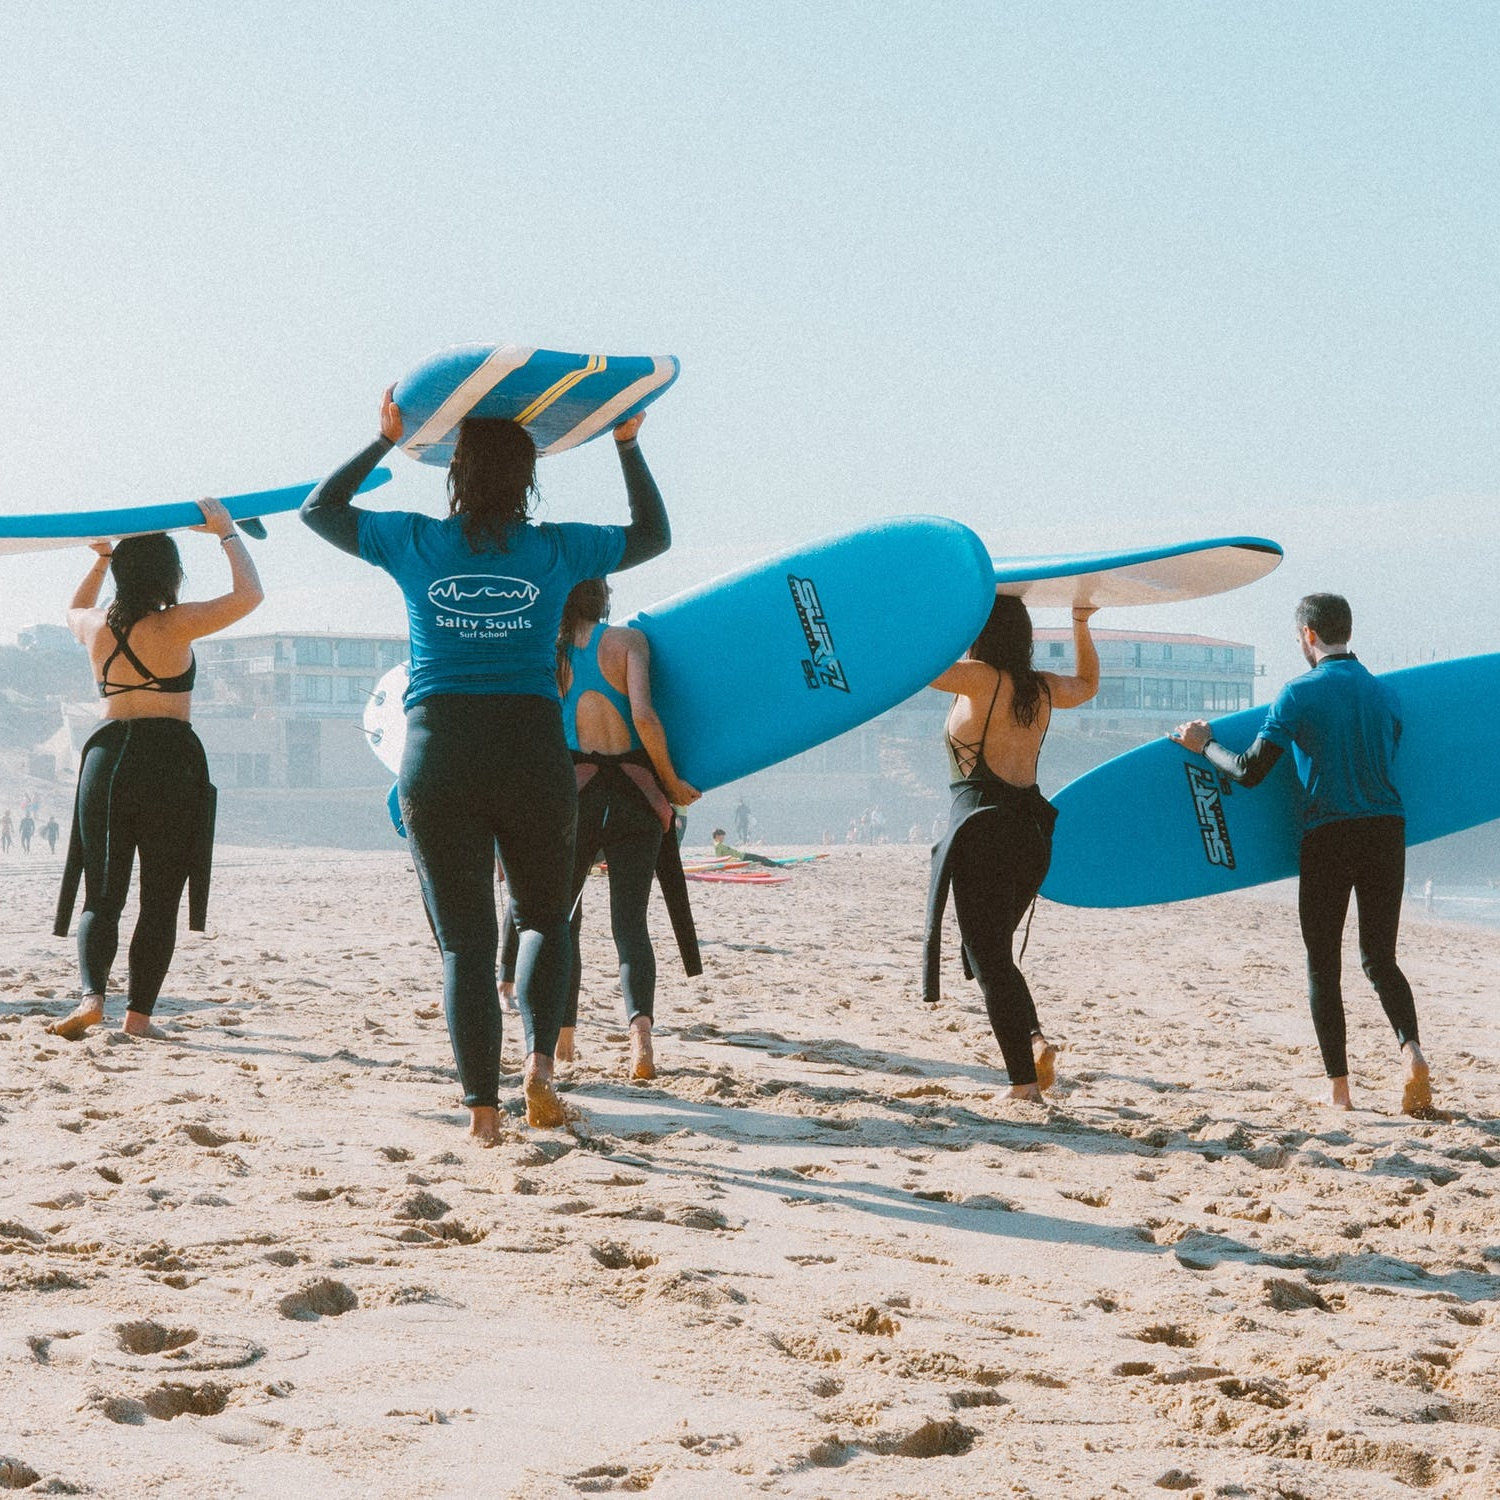 Group Surfing Trip to Hawaii Northcutt Travel Agency with Shayla Northcutt